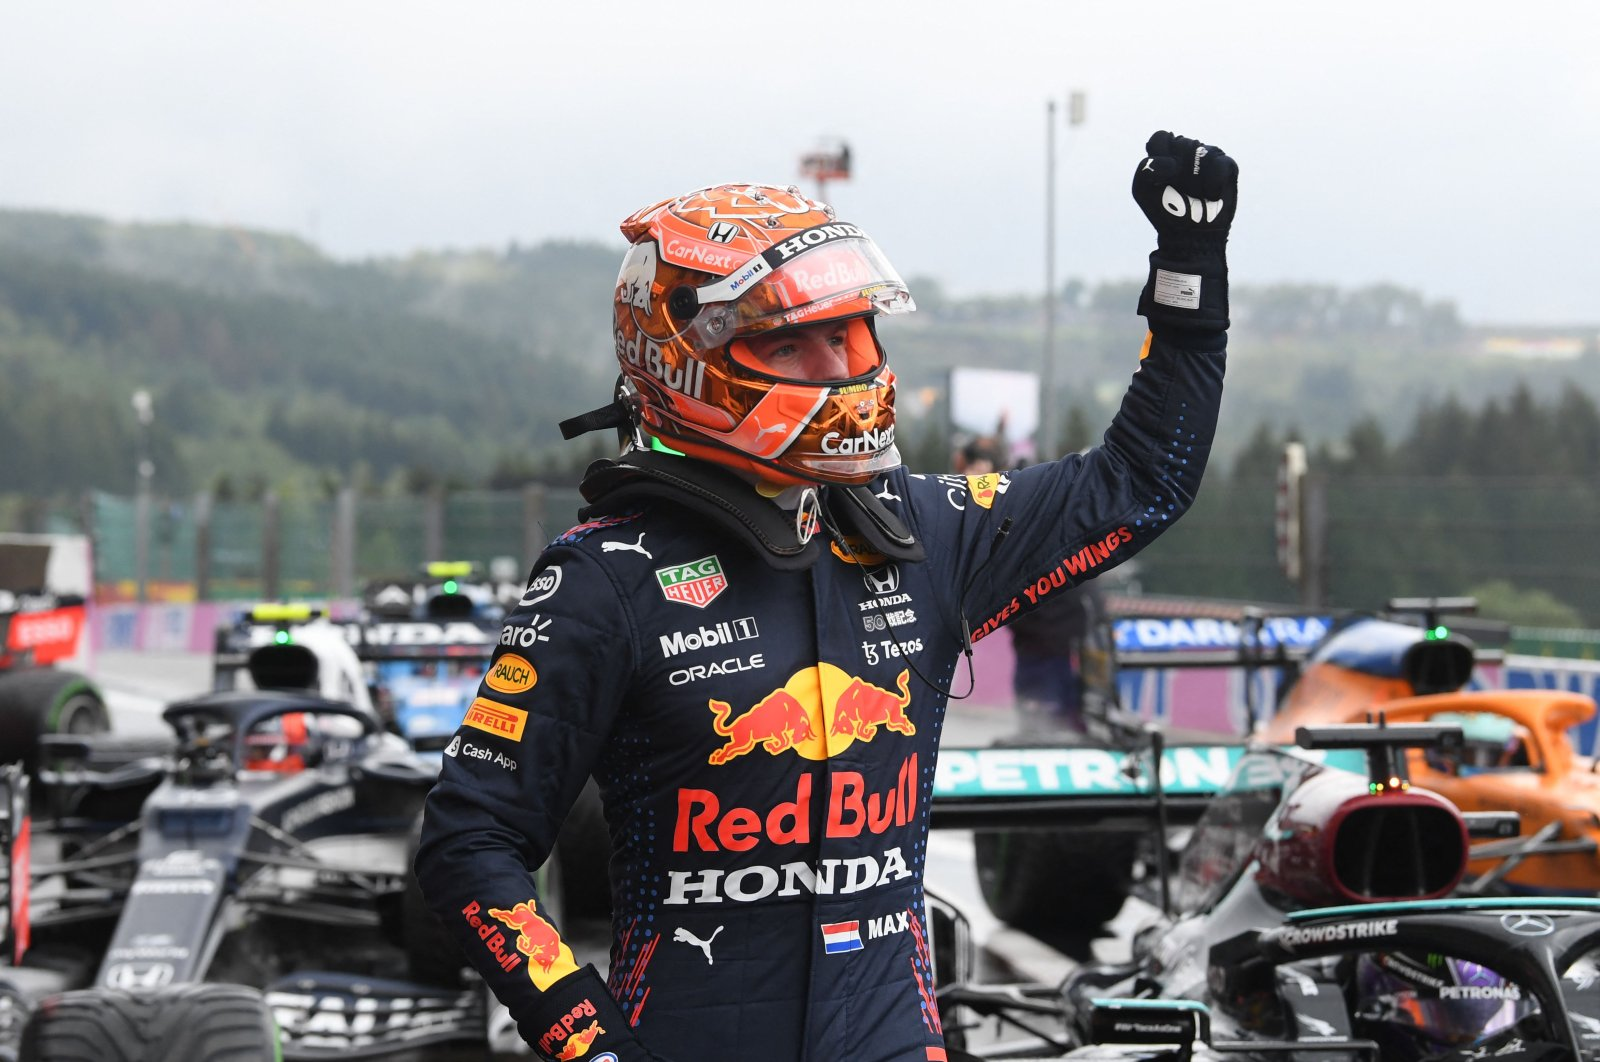 Red Bull's Dutch driver Max Verstappen celebrates taking pole position in the parc ferme after  the qualifying session of the Formula One Belgian Grand Prix at the Spa-Francorchamps circuit in Spa, Aug. 28, 2021. (AFP Photo)